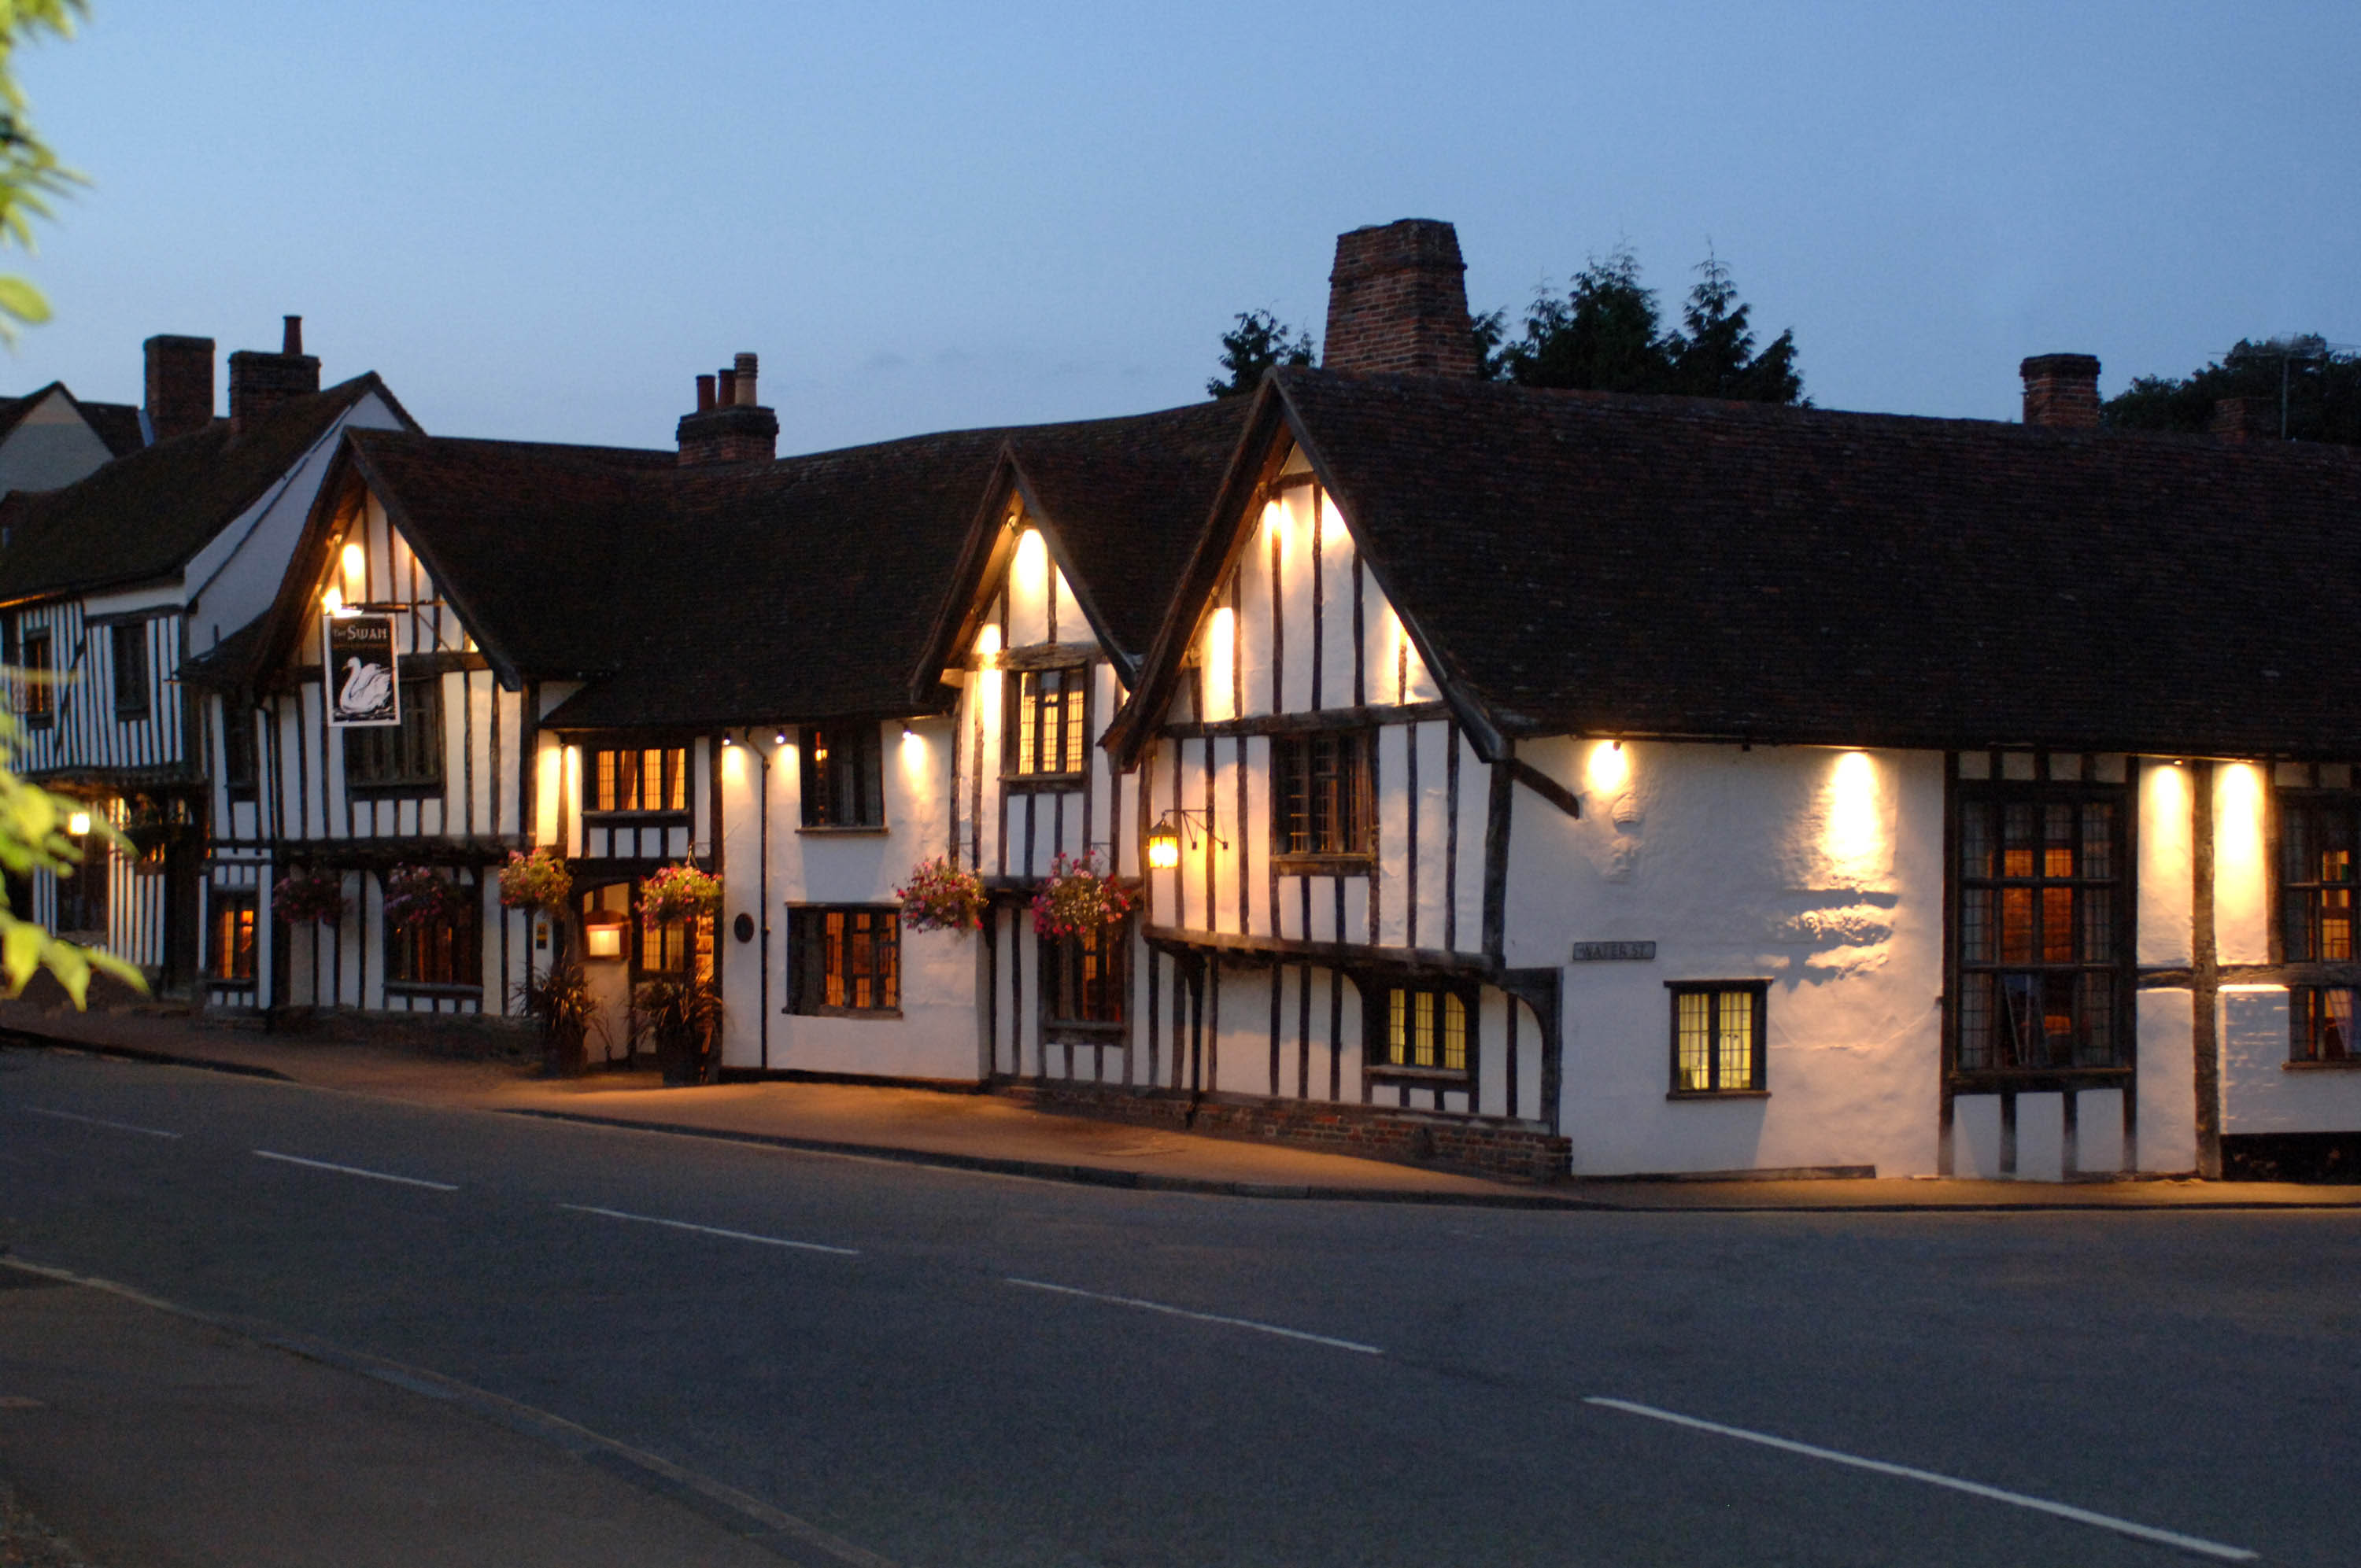 The Swan Hotel, Lavenham